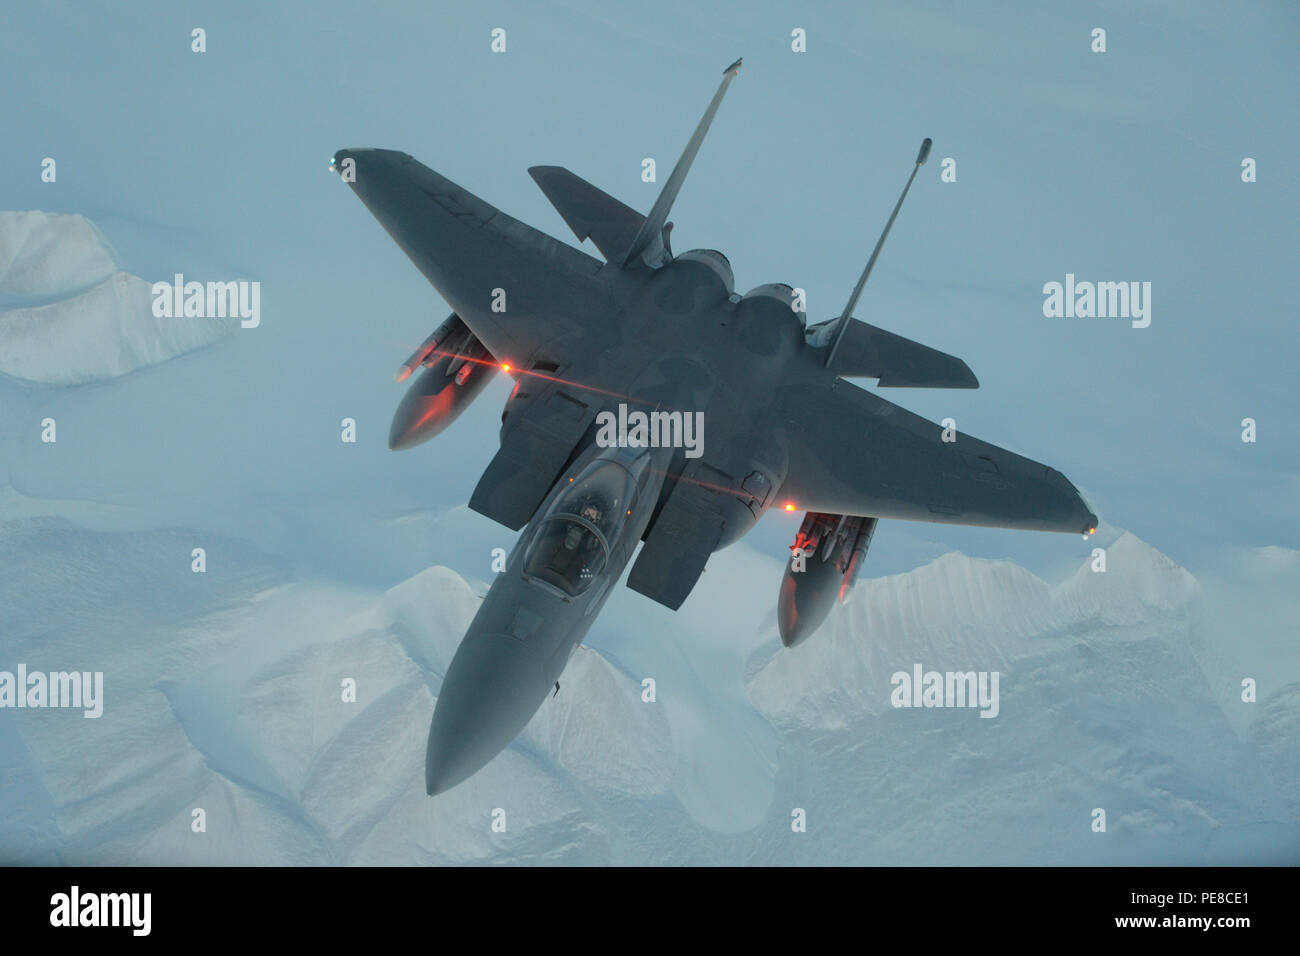 A United States Air Force F-15C Eagle from the 144th Fighter Wing flies above the High Arctic, Oct. 22, 2015. From Oct. 15-26, 2015, approximately 700 members from the Canadian Armed forces, the United States Air Force, the United States Navy, and the United States Air National Guard are deploying to Iqaluit, Nunavut, and 5 Wing Goose Bay, Newfoundland and Labrador for Exercise Vigilant Shield 16. (US Air National Guard photo by Master Sgt. David J. Loeffler/released) Stock Photo